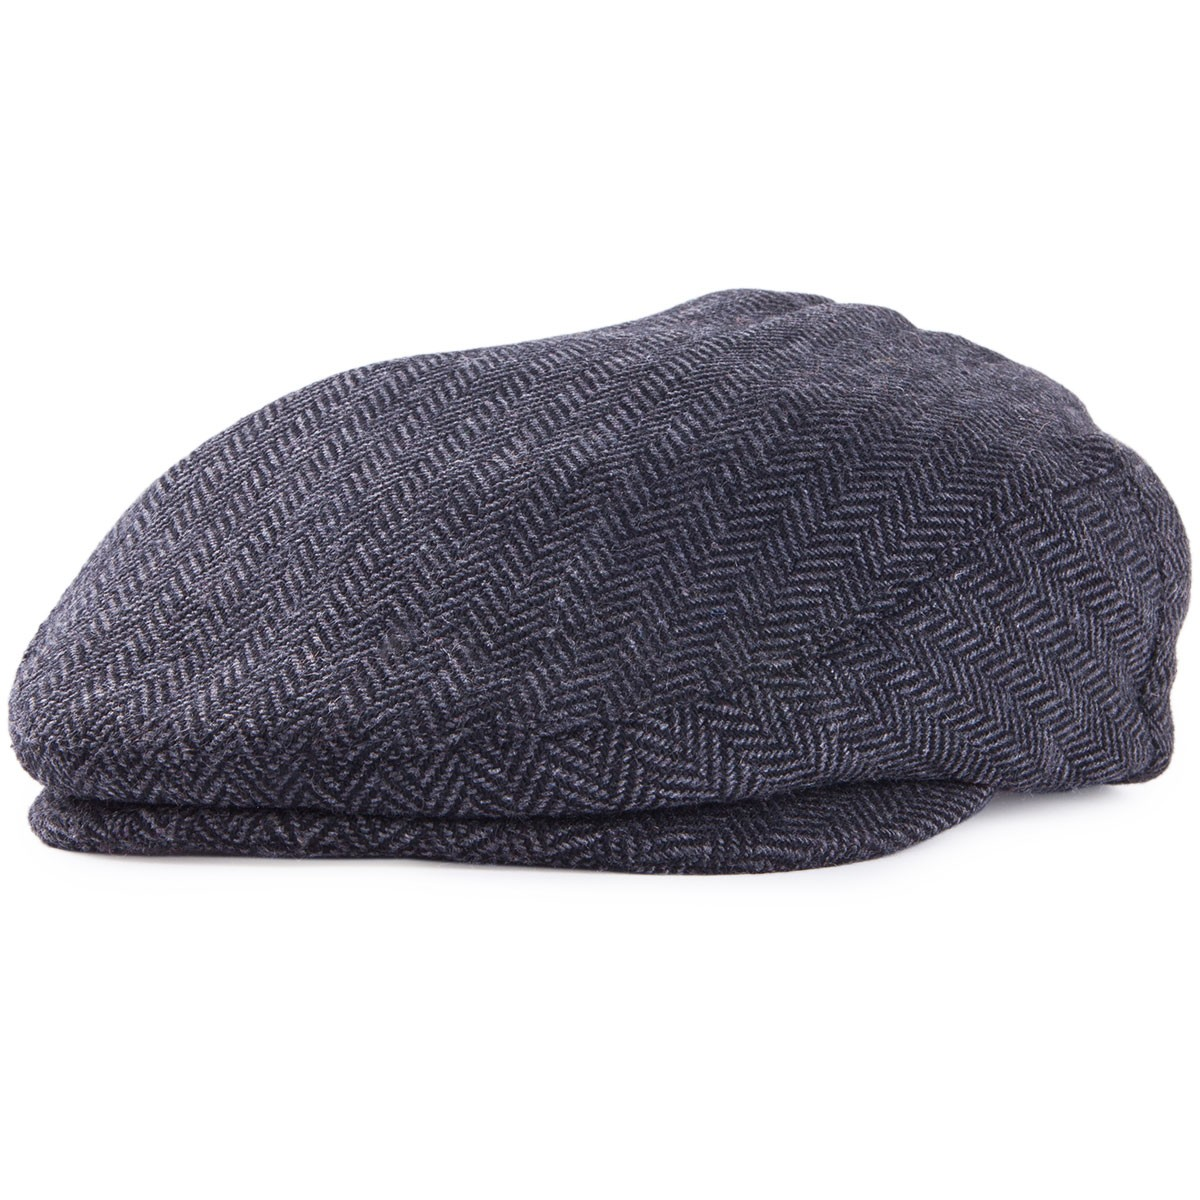 1333786dd Brixton Hooligan Snap Cap Hat - Grey/Black